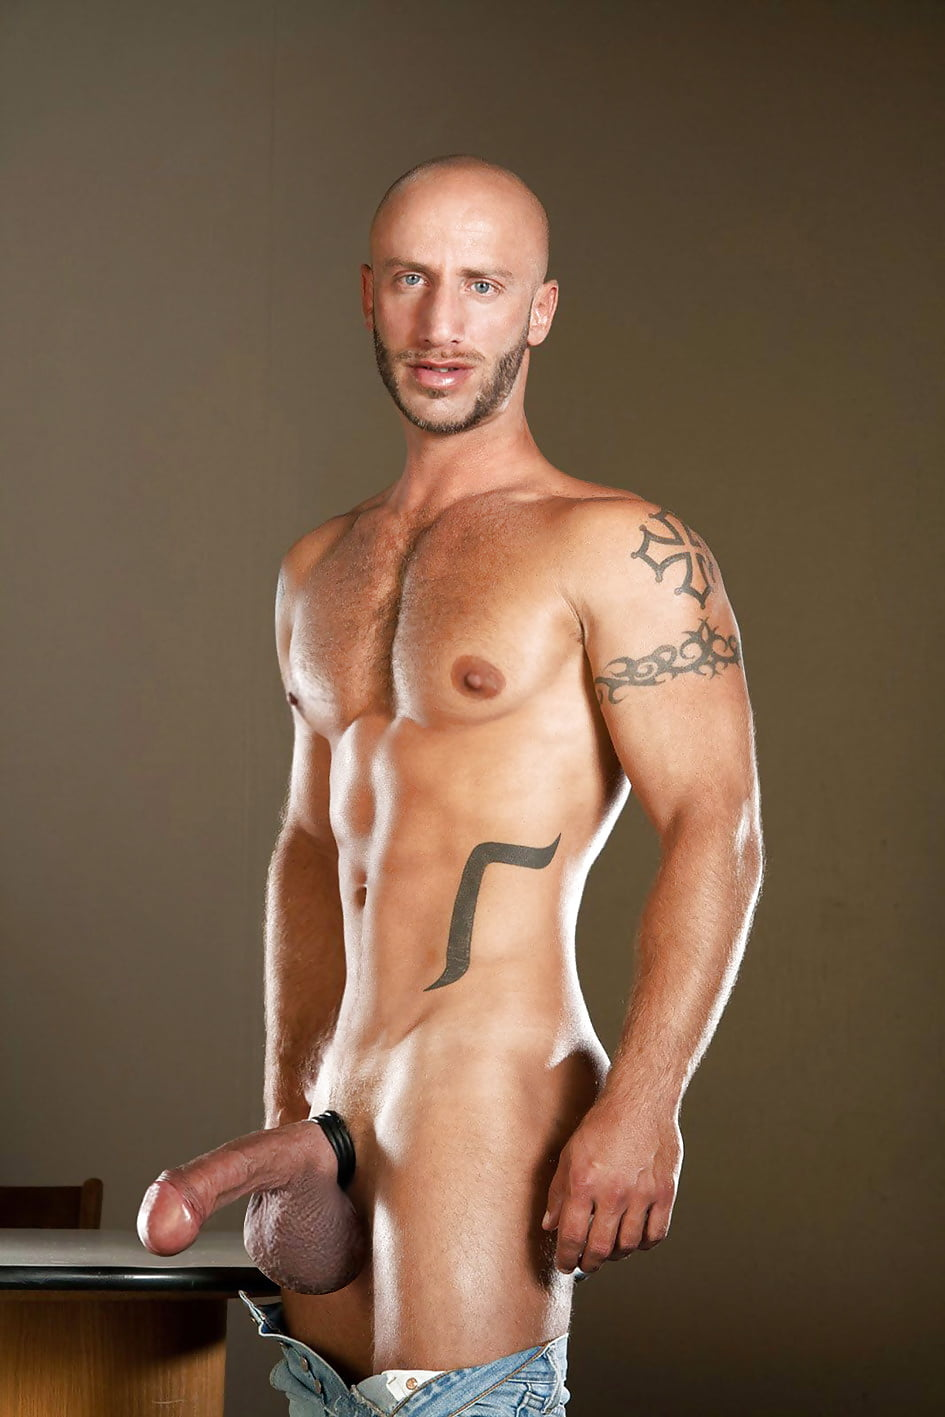 Showing xxx images for straight male pornstar mike angelo xxx